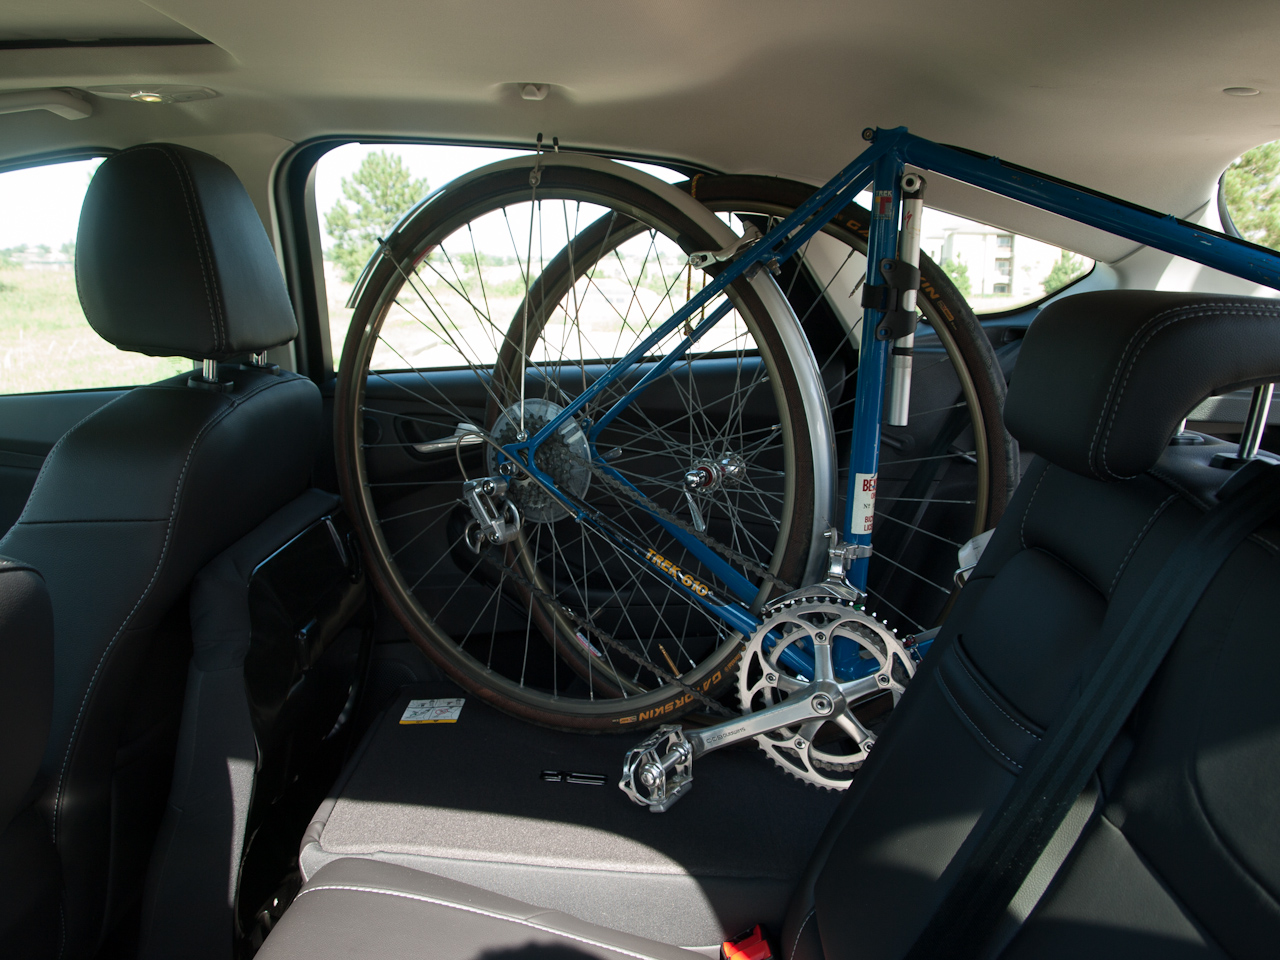 Interior Bike Rack For A 2012 Ford Focus Hatchback Steve